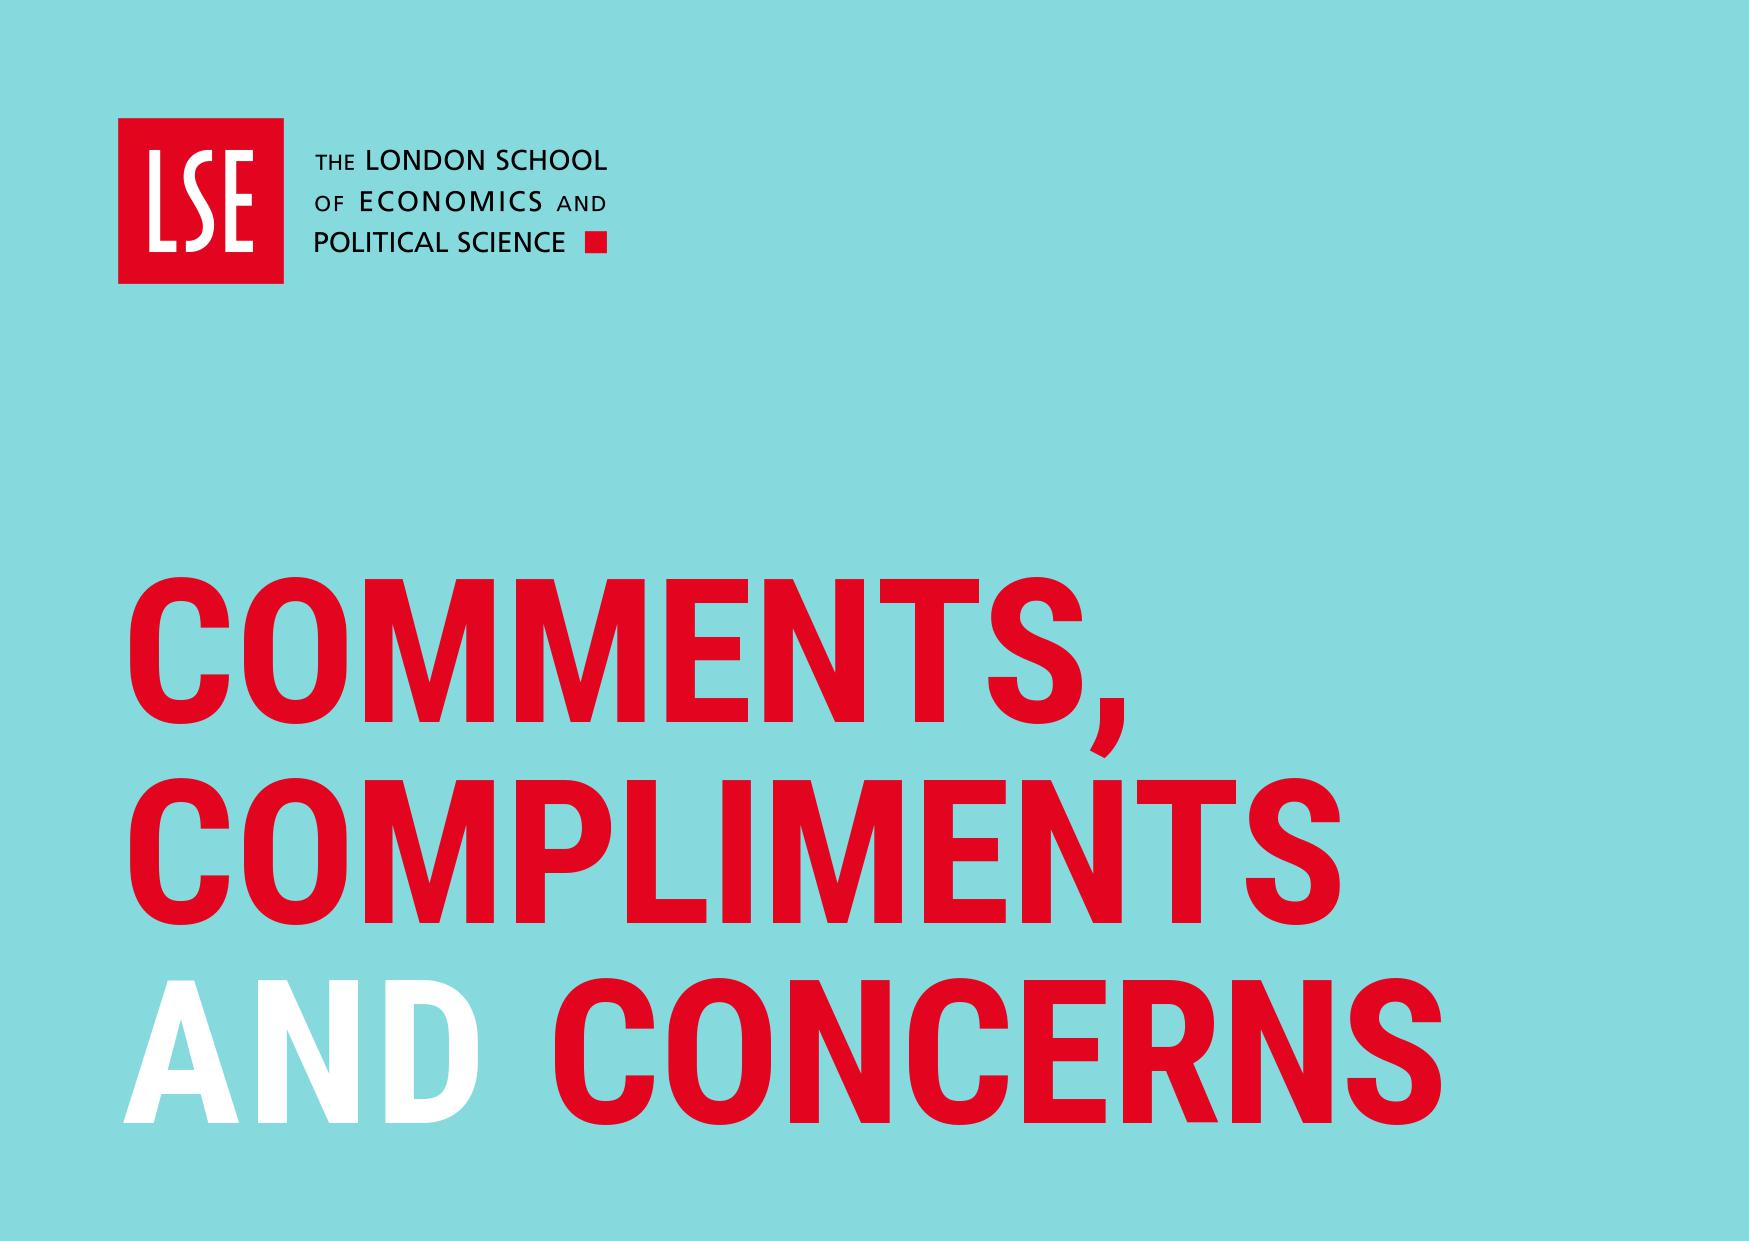 comments, compliments and concerns postcard design with the LSE logo